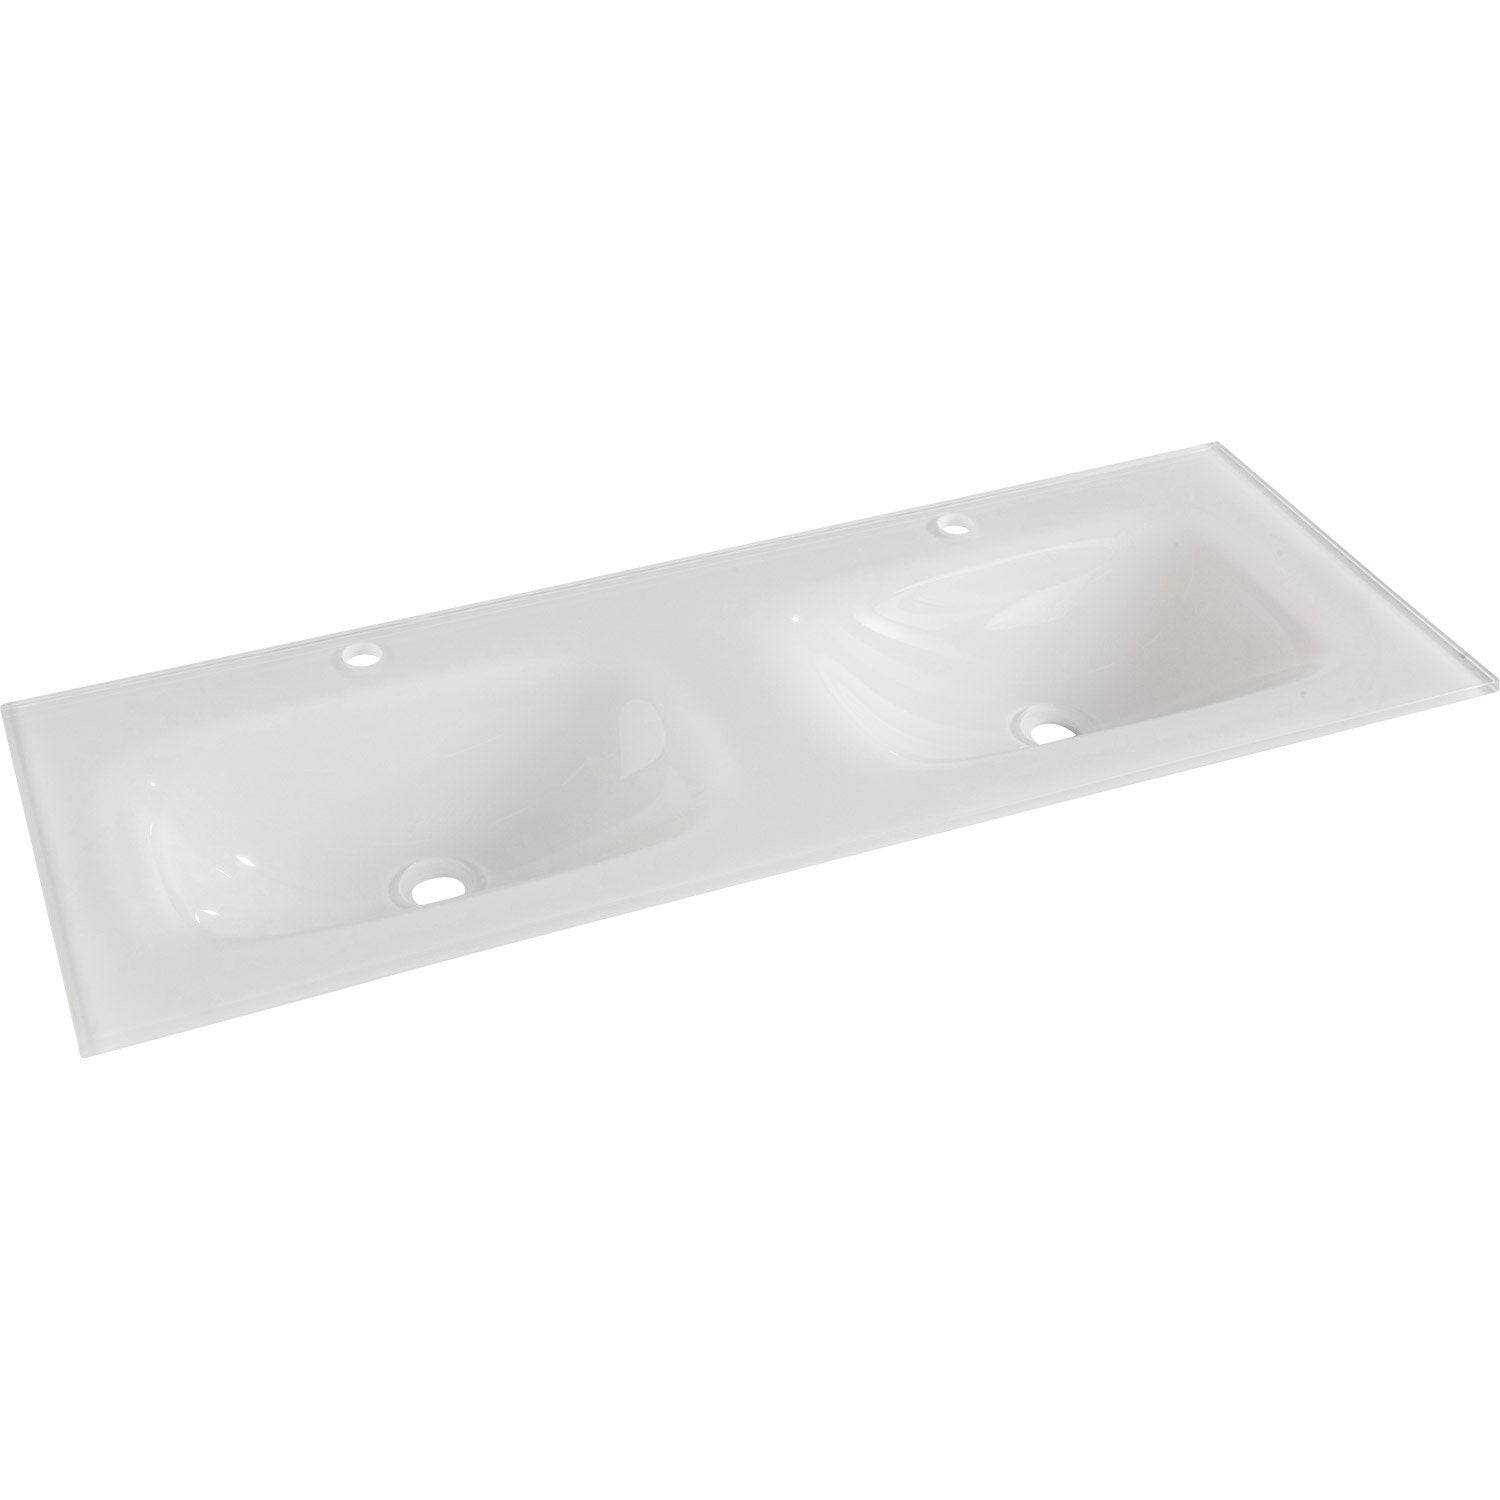 Plan vasque double opale verre tremp 121 cm leroy merlin for Double vasque salle de bain leroy merlin